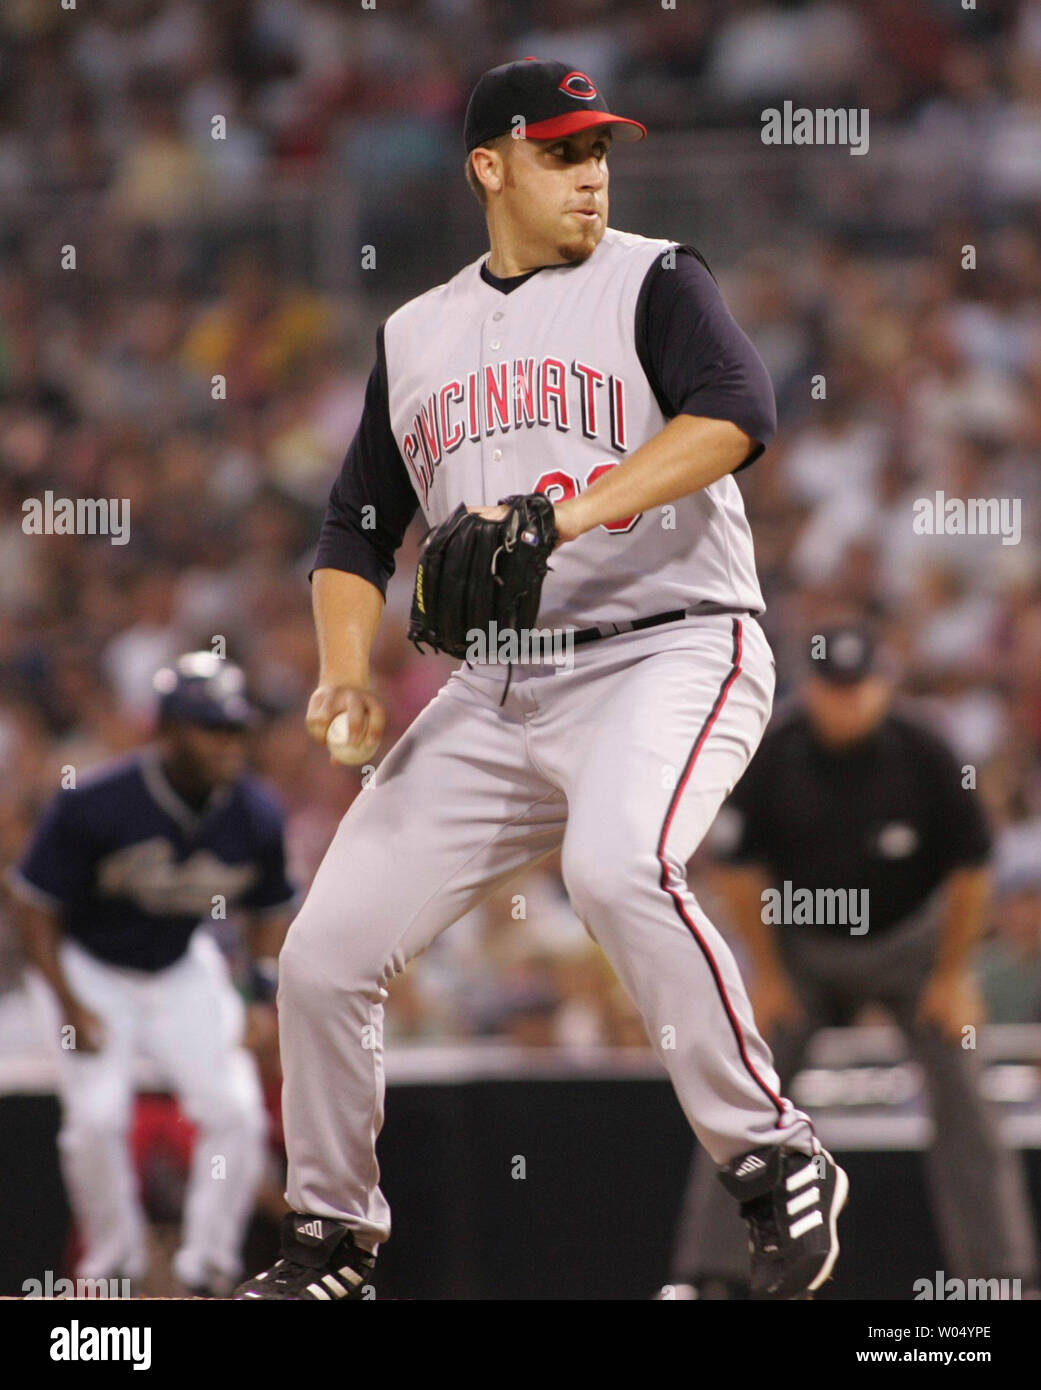 Six foot seven inch pitcher Aaron Harang throws against the Cincinnati Reds at Petco Park in San Diego CA, July 30, 2005. (UPI Photo/Roger Williams) Stock Photo